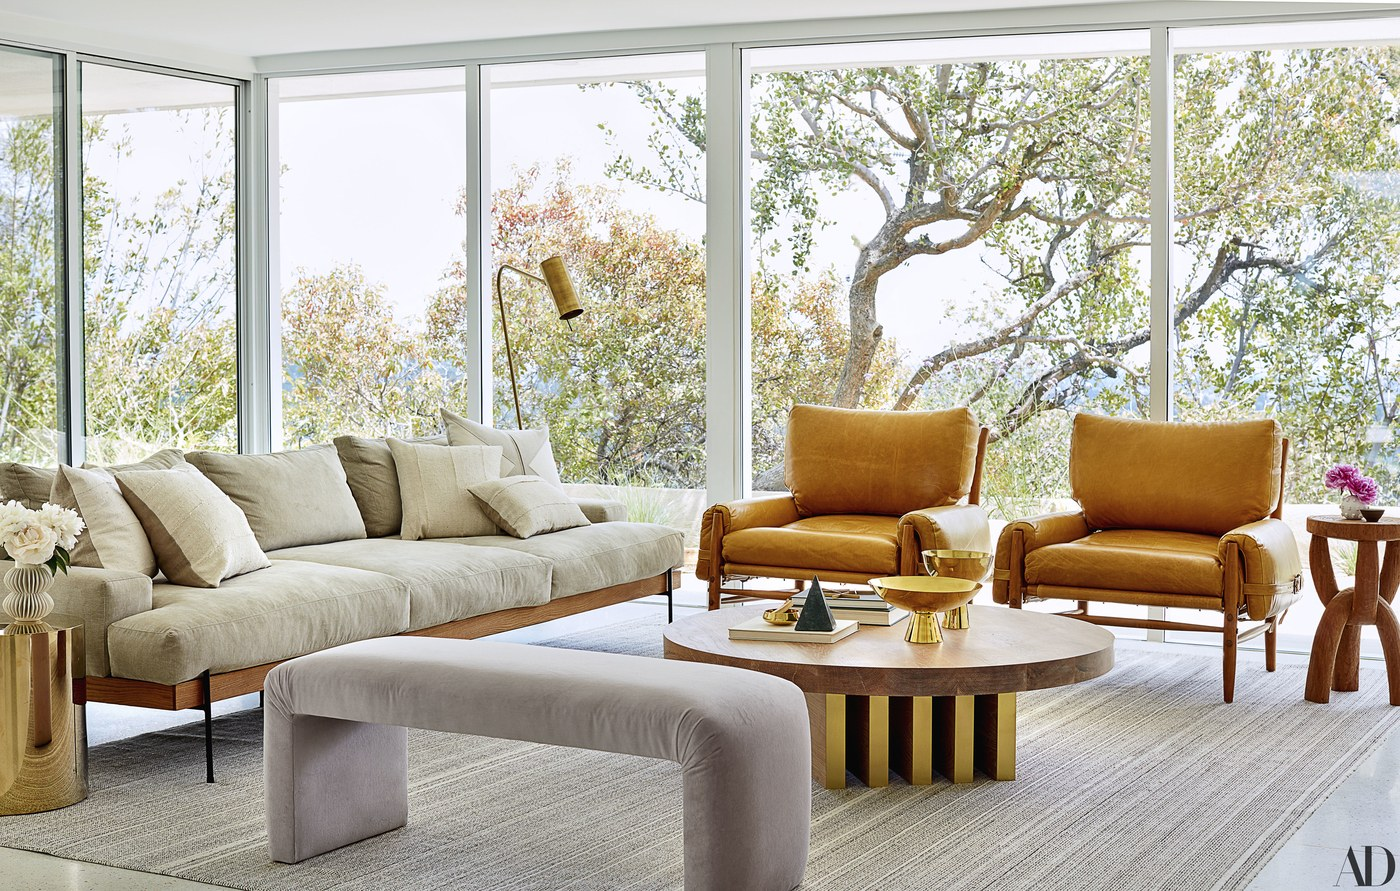 Always_Looking_For_The_Magic_Travel_DesignBlogNicoleToland-House-Tour-Mandy-Moore